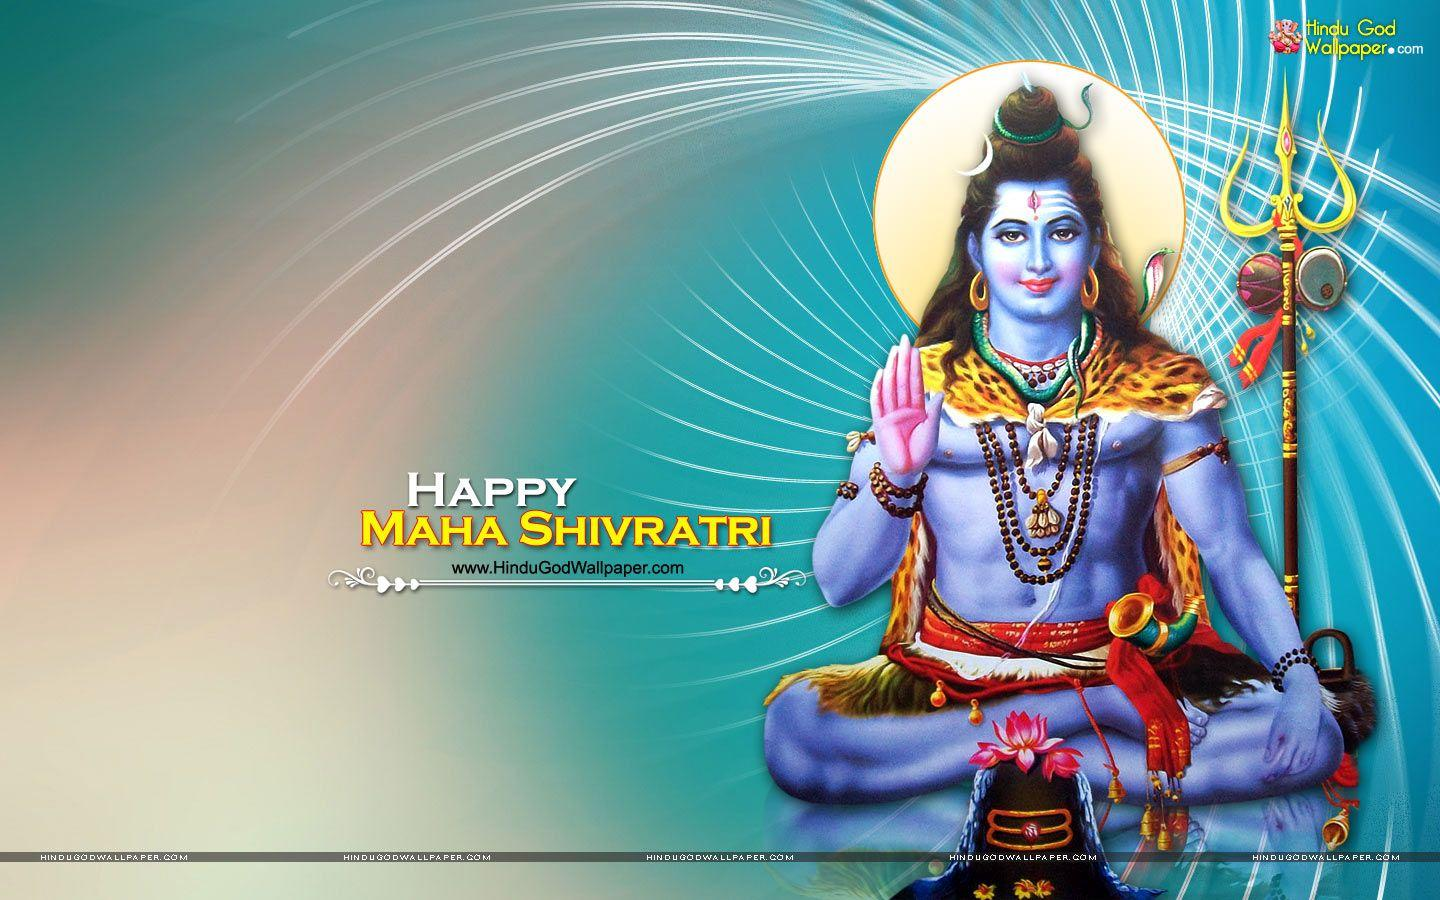 Maha Shivratri 3D Wallpapers, Photos & Images Download